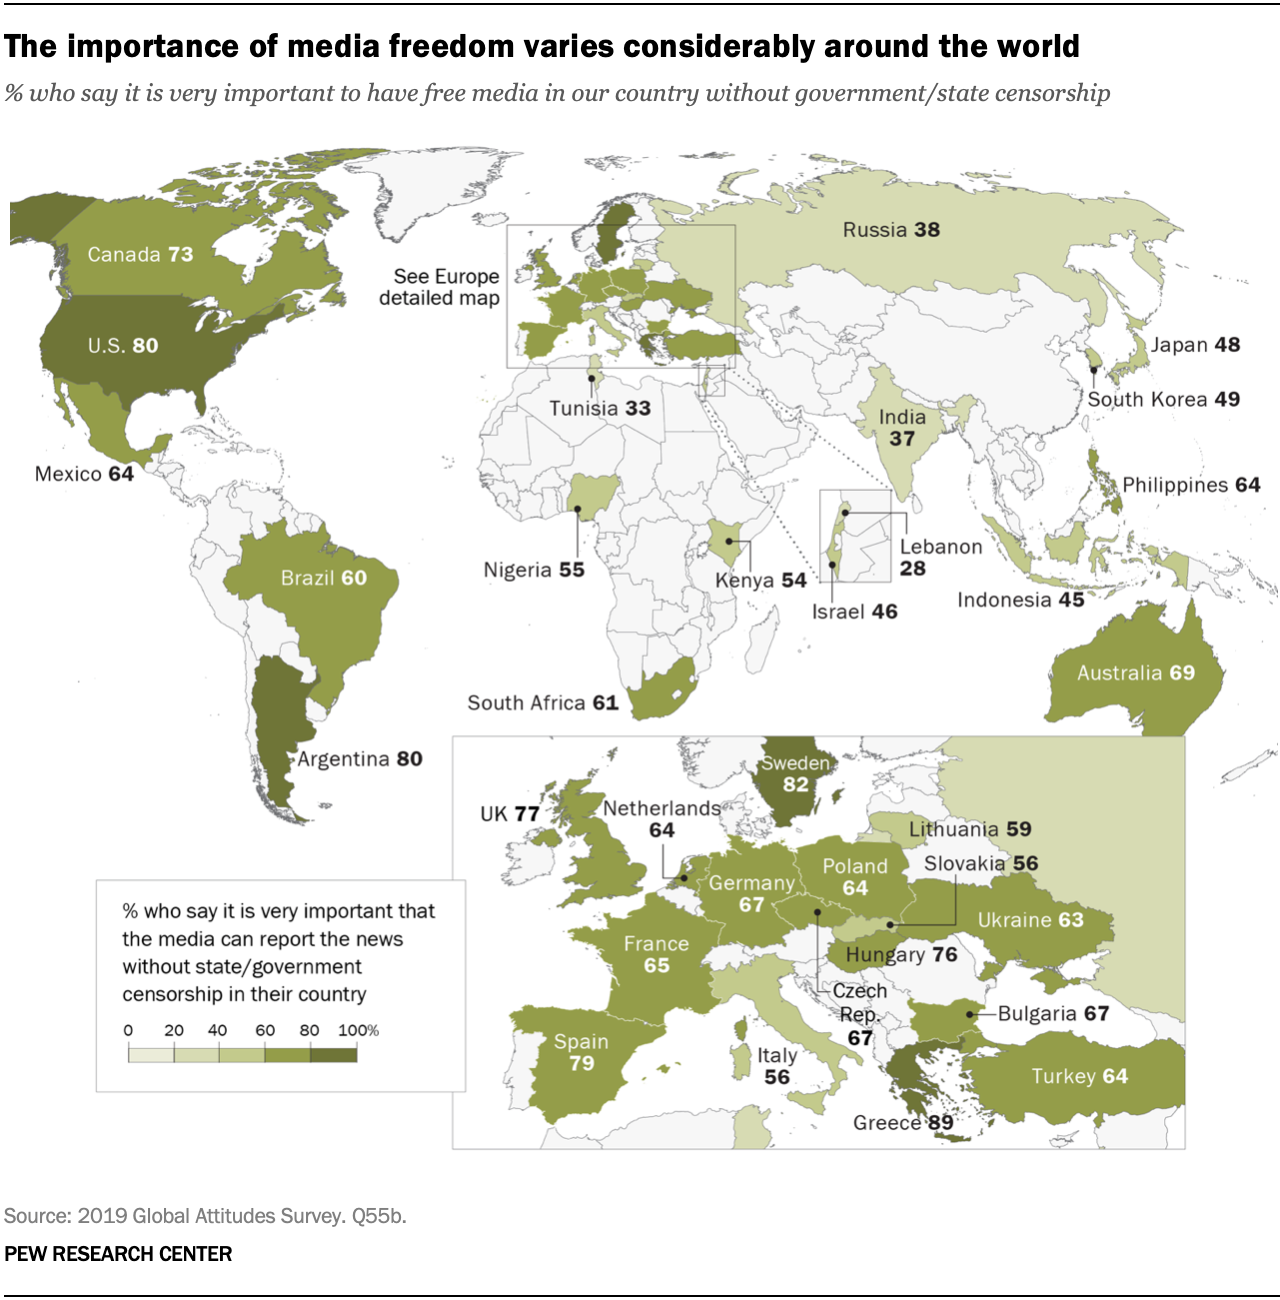 The importance of media freedom varies considerably around the world